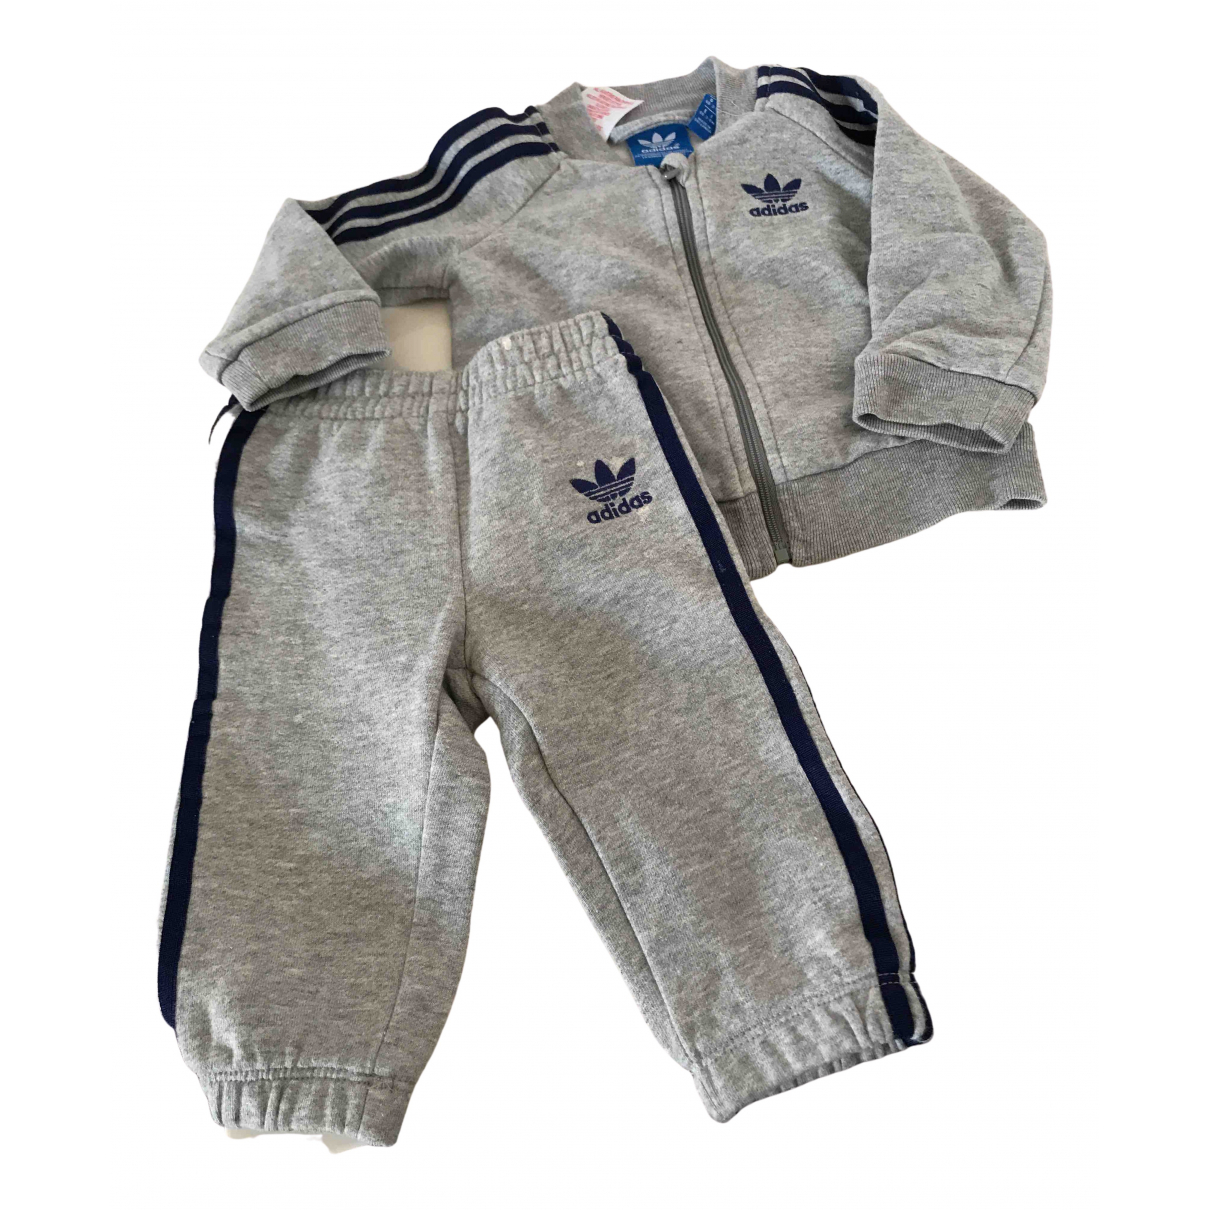 Adidas N Grey Cotton Outfits for Kids 6 months - up to 67cm FR